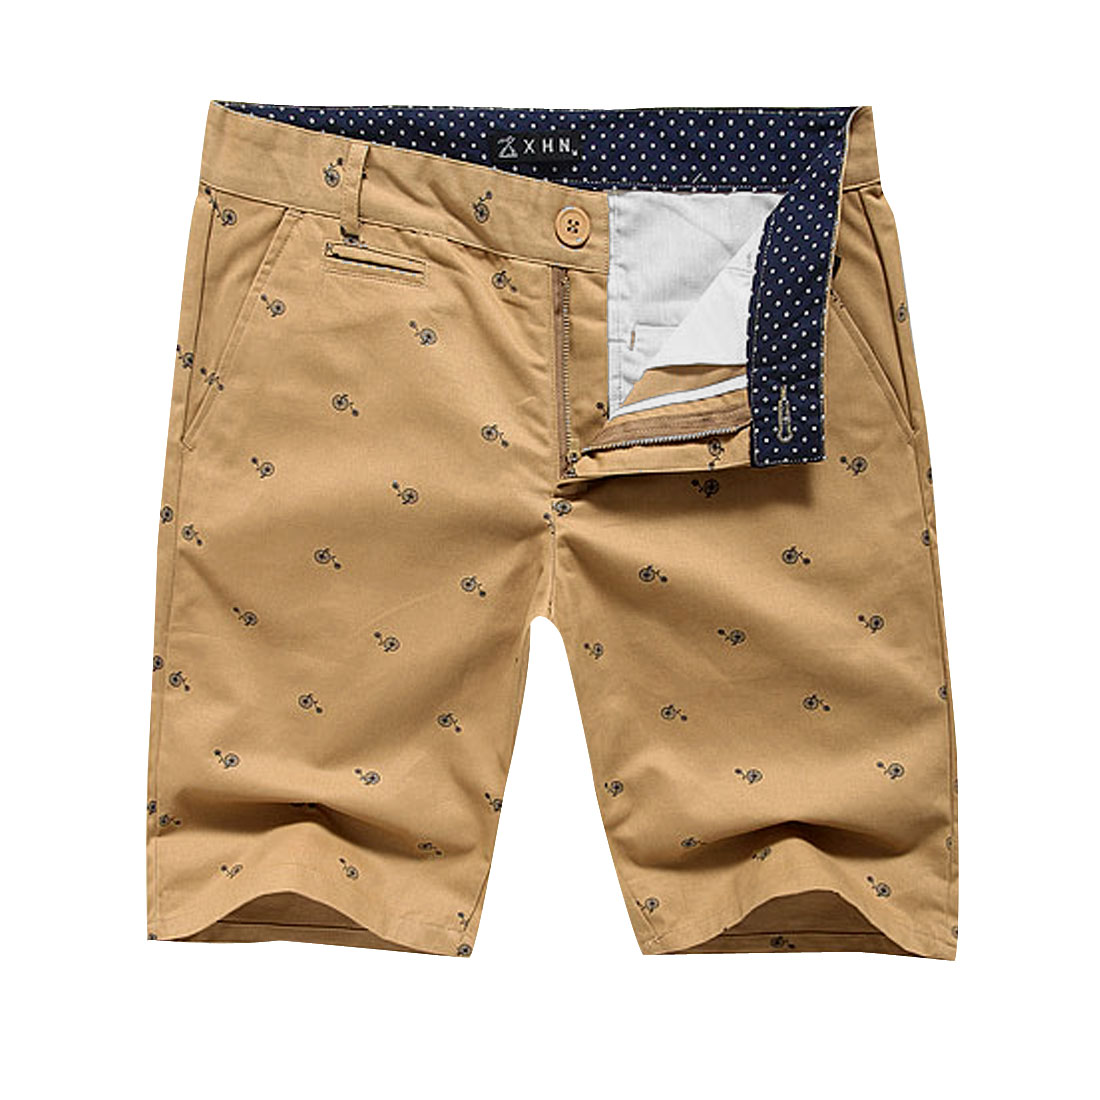 Man Stylish Slant Pockets Small Bike Dots Details Shorts Khaki W33